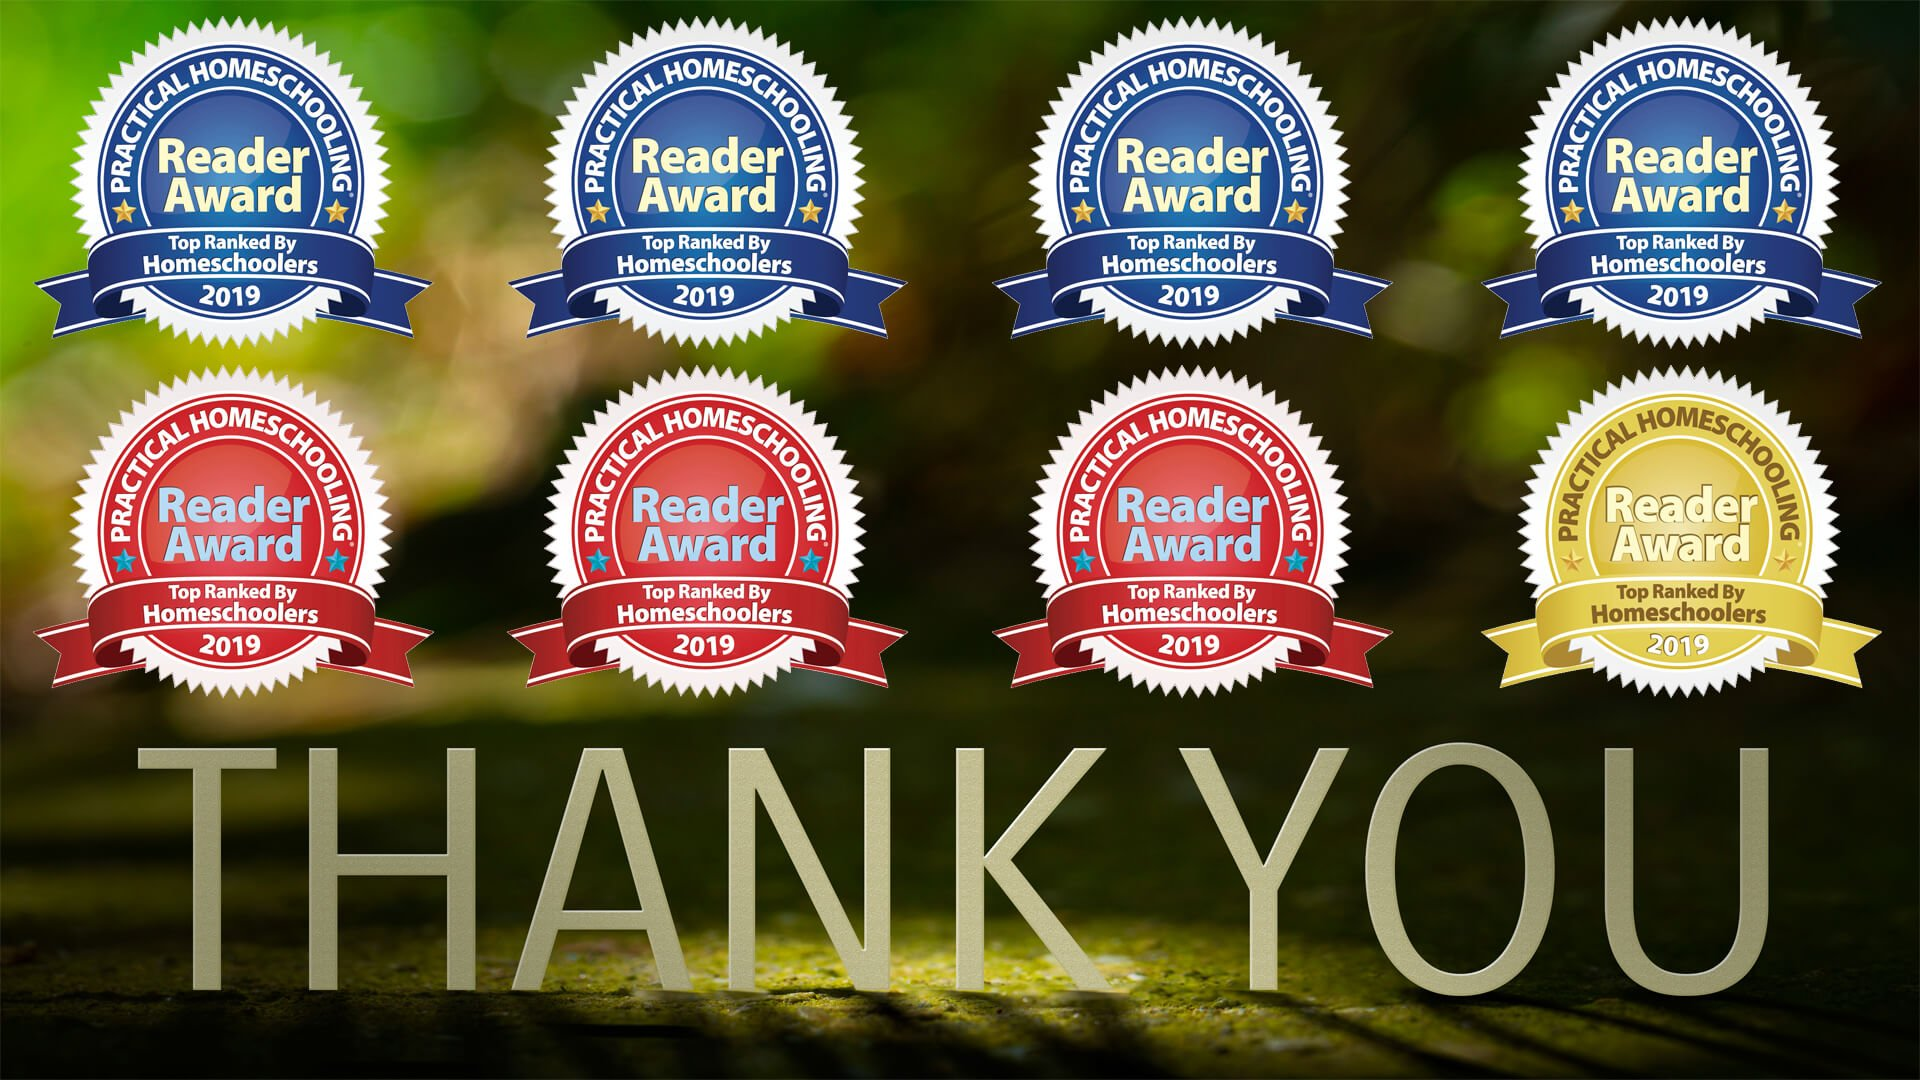 Thank you for voting for us in the 2019 Practical Homeschooling Awards!